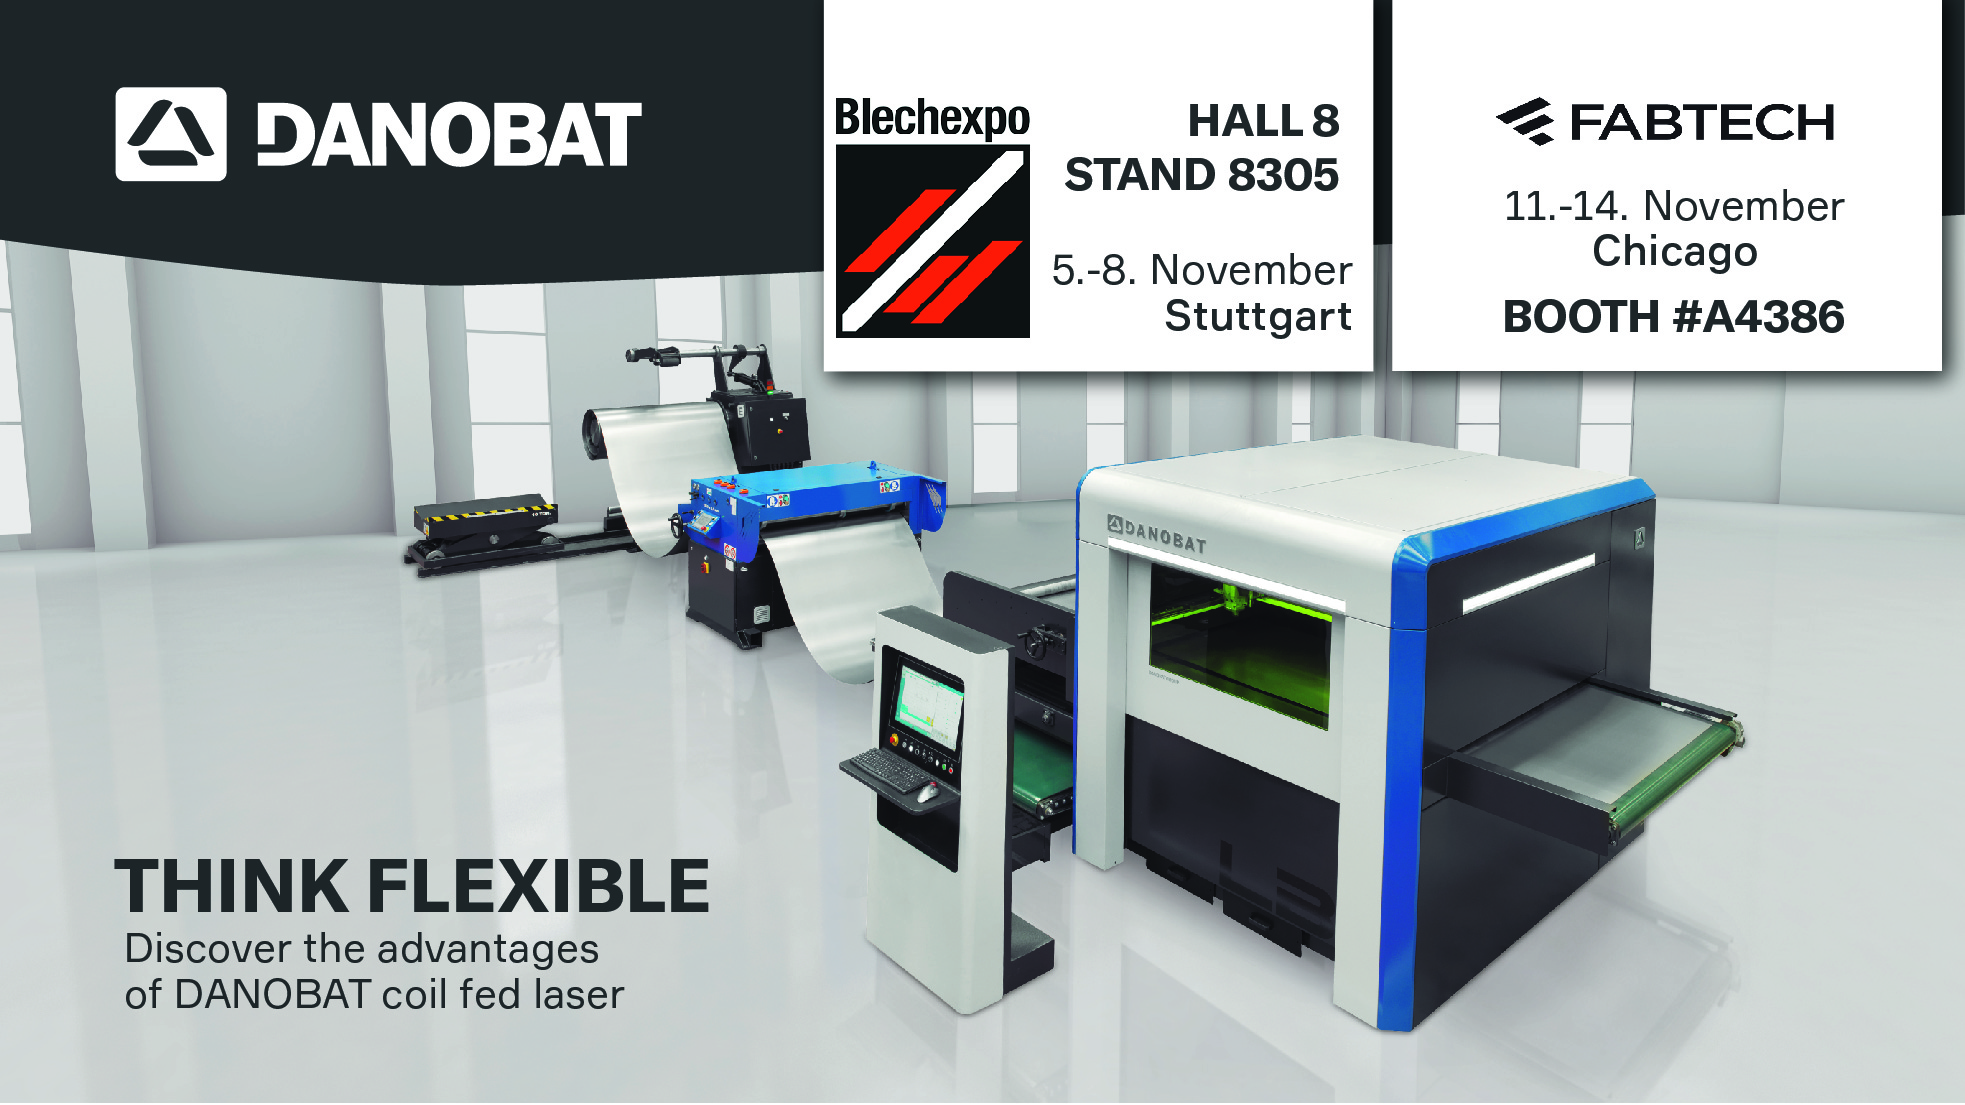 Flexibility, digitalization and a new programming software are the main proposals of Danobatgroup's Sheet Metal Division at BLECHEXPO and FABTECH exhibitions